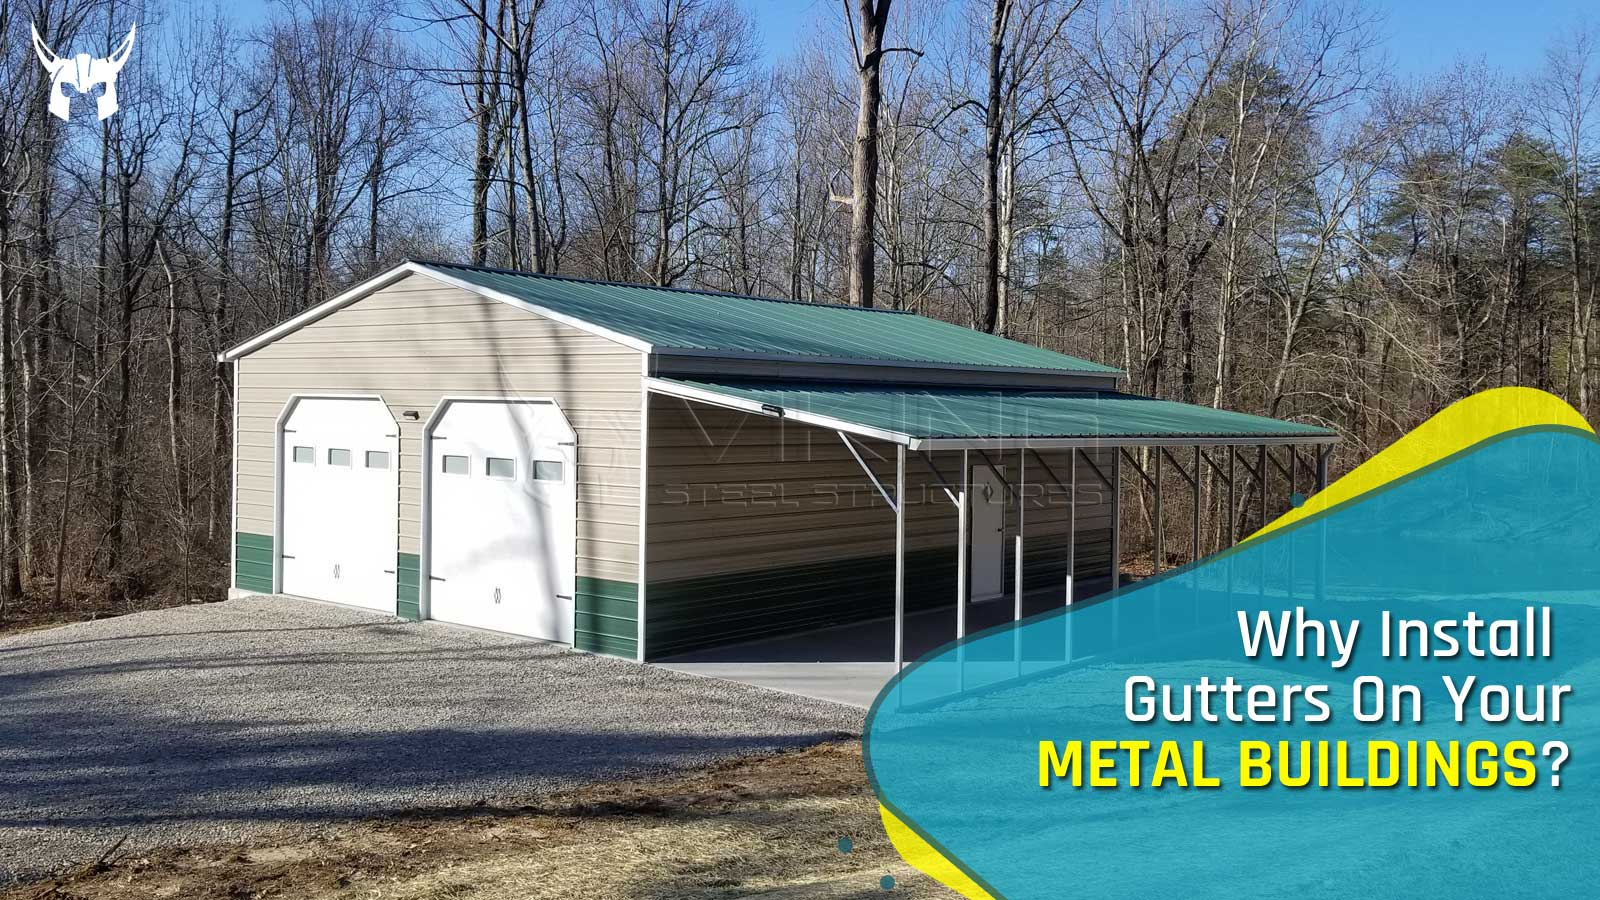 Why Install Gutters On Your Metal Buildings?